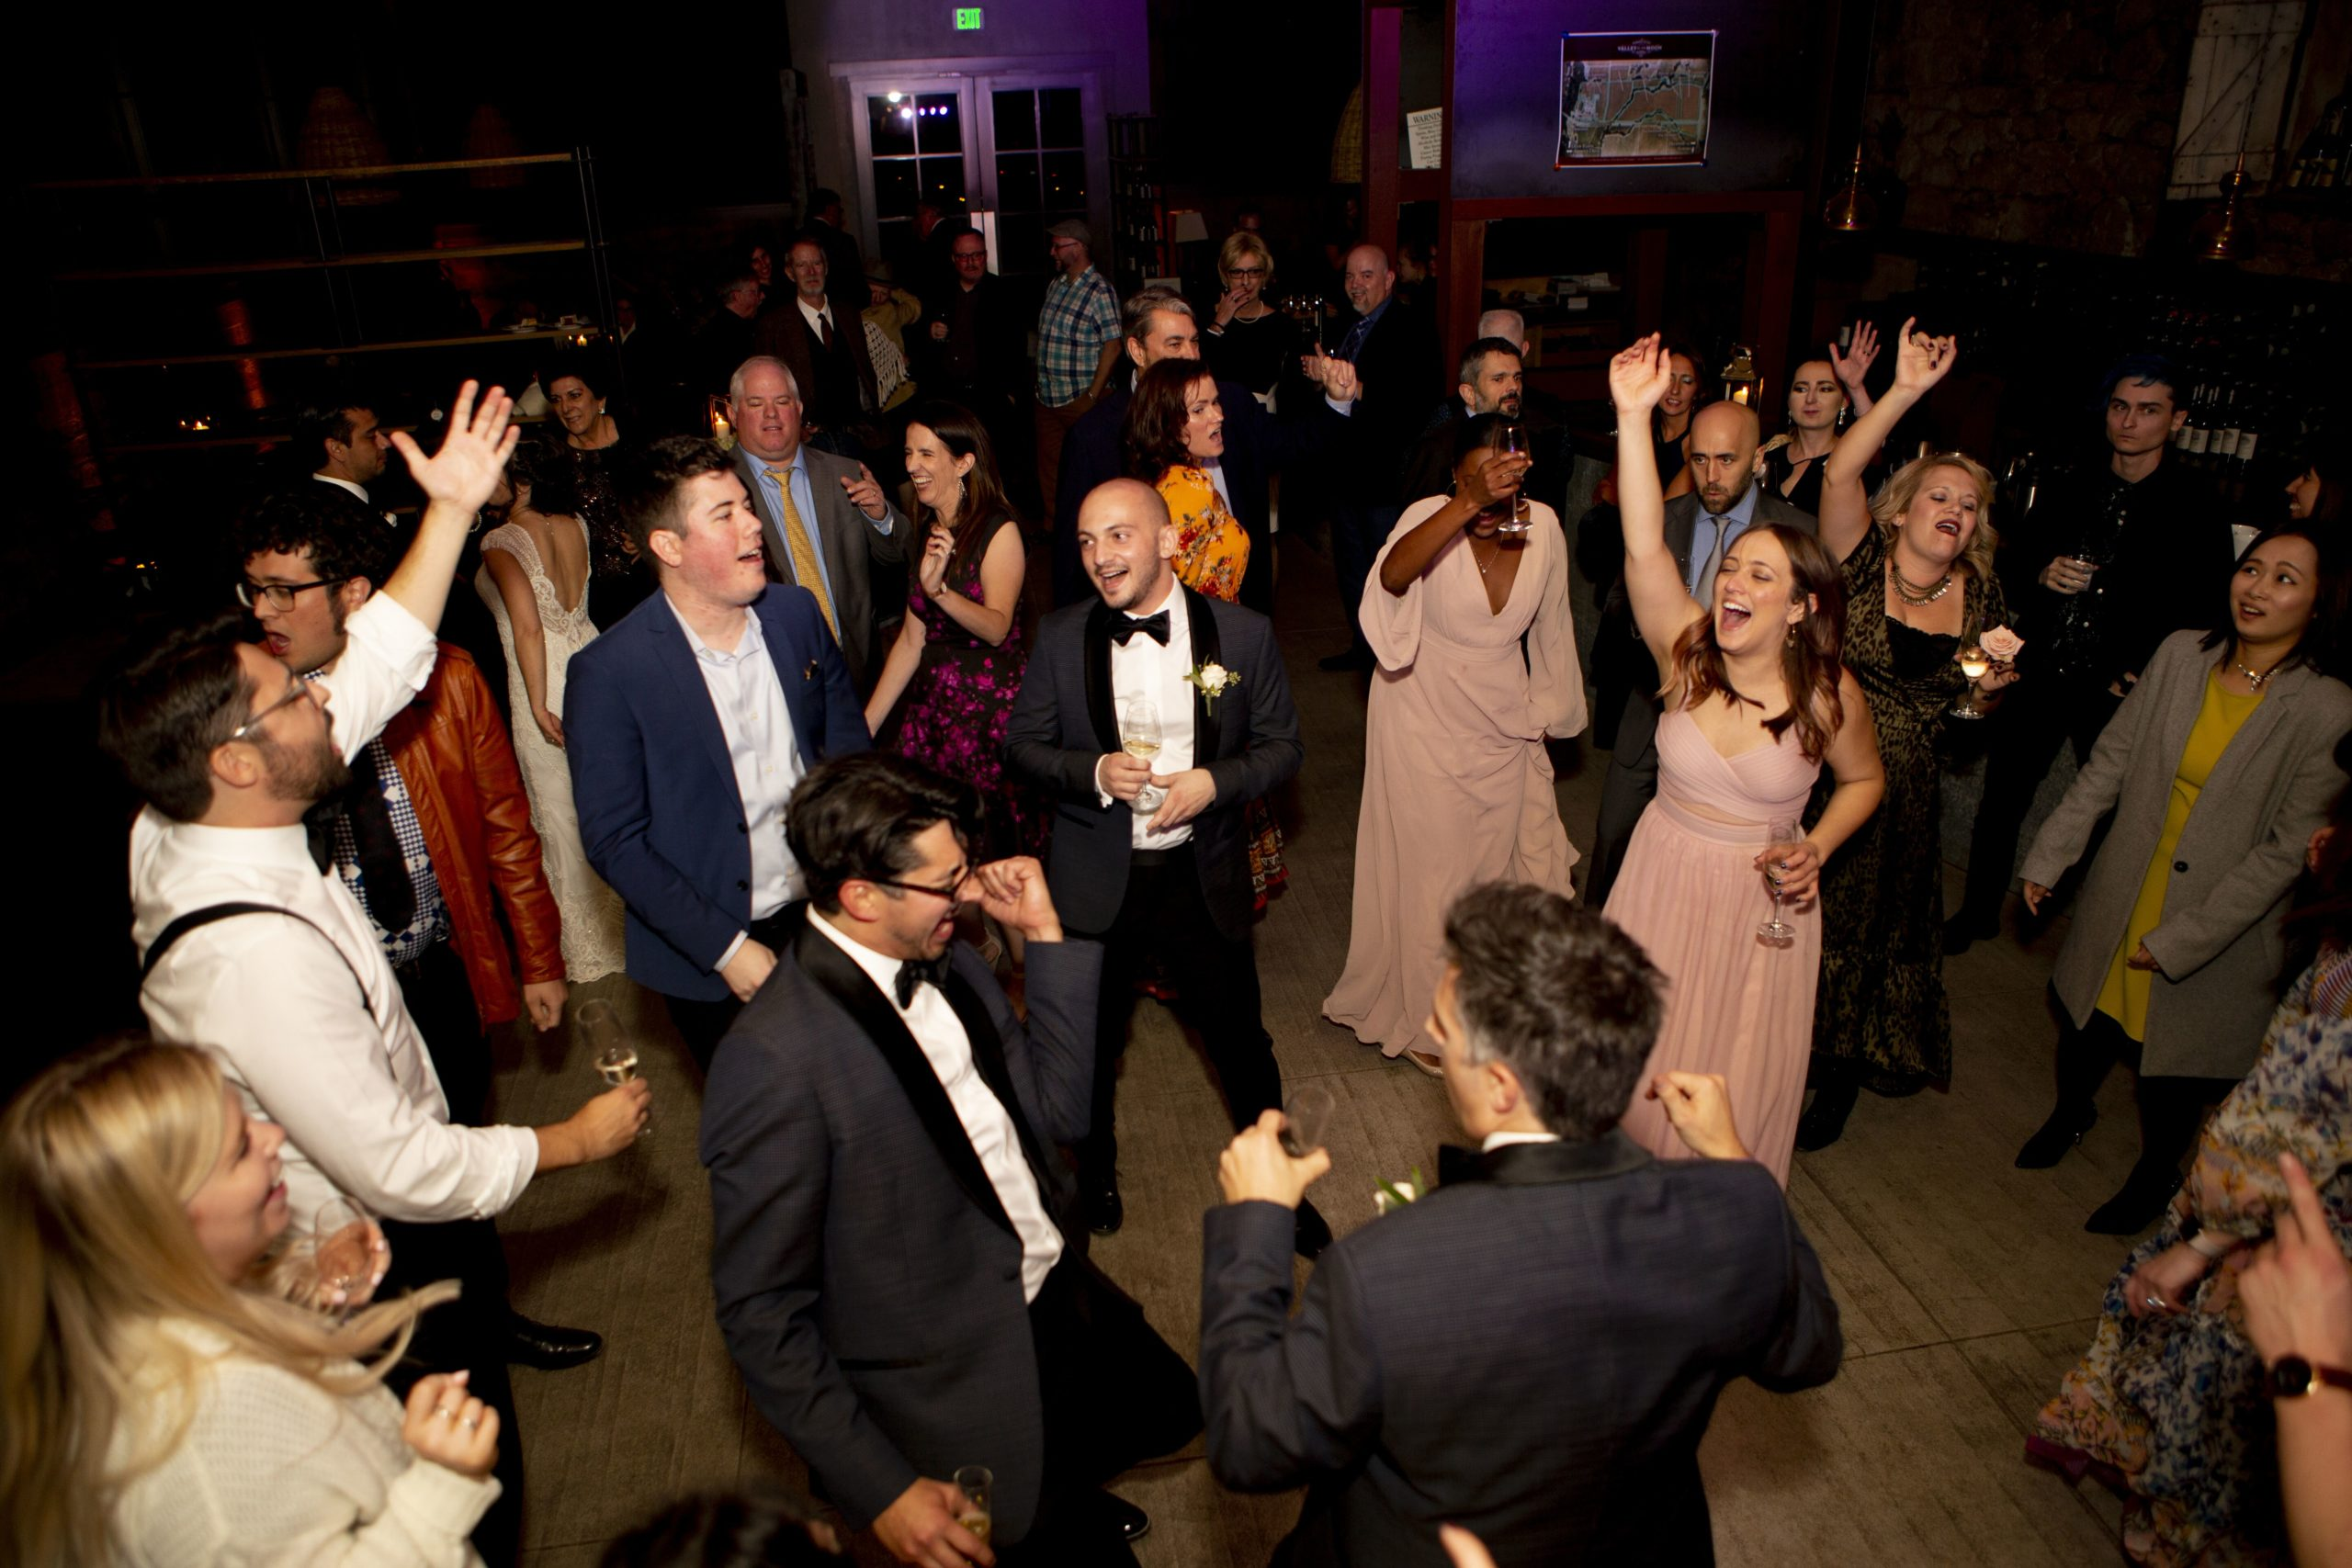 Wedding Etiquette-When to Leave the Party